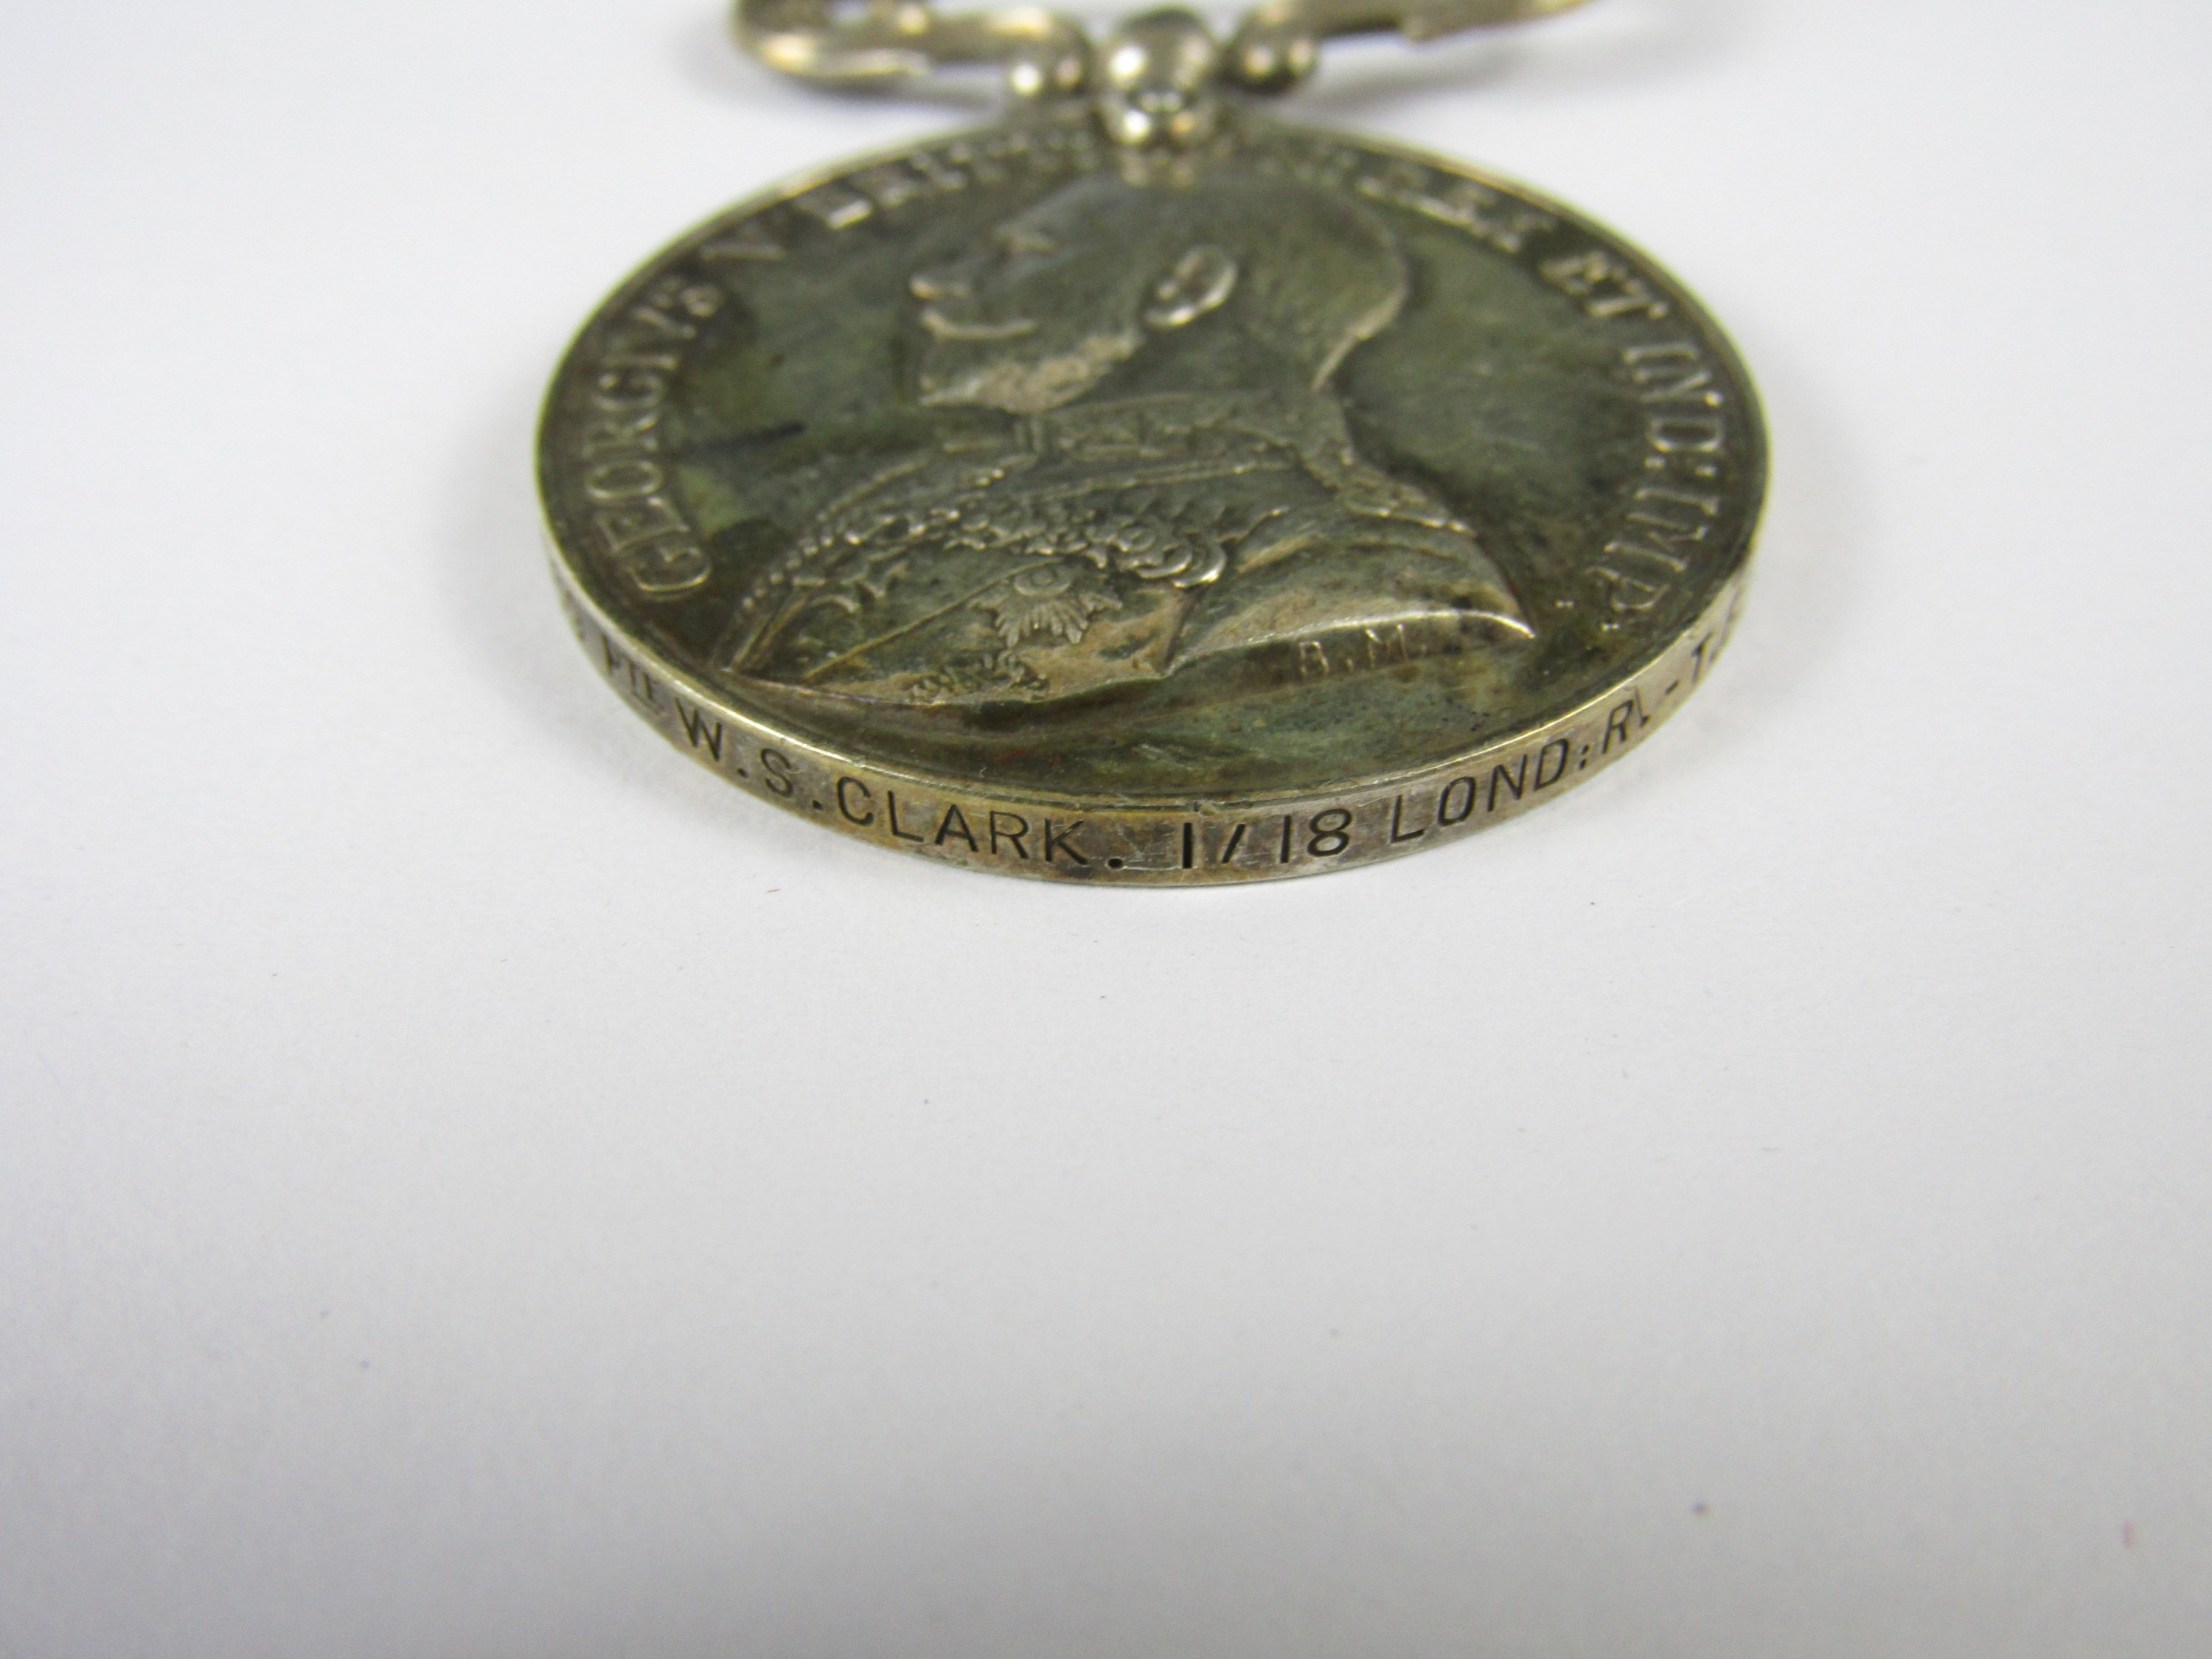 Lot 23 - A George V Military Medal to 1569 Pte W S Clark, 1/18 London Regt TF